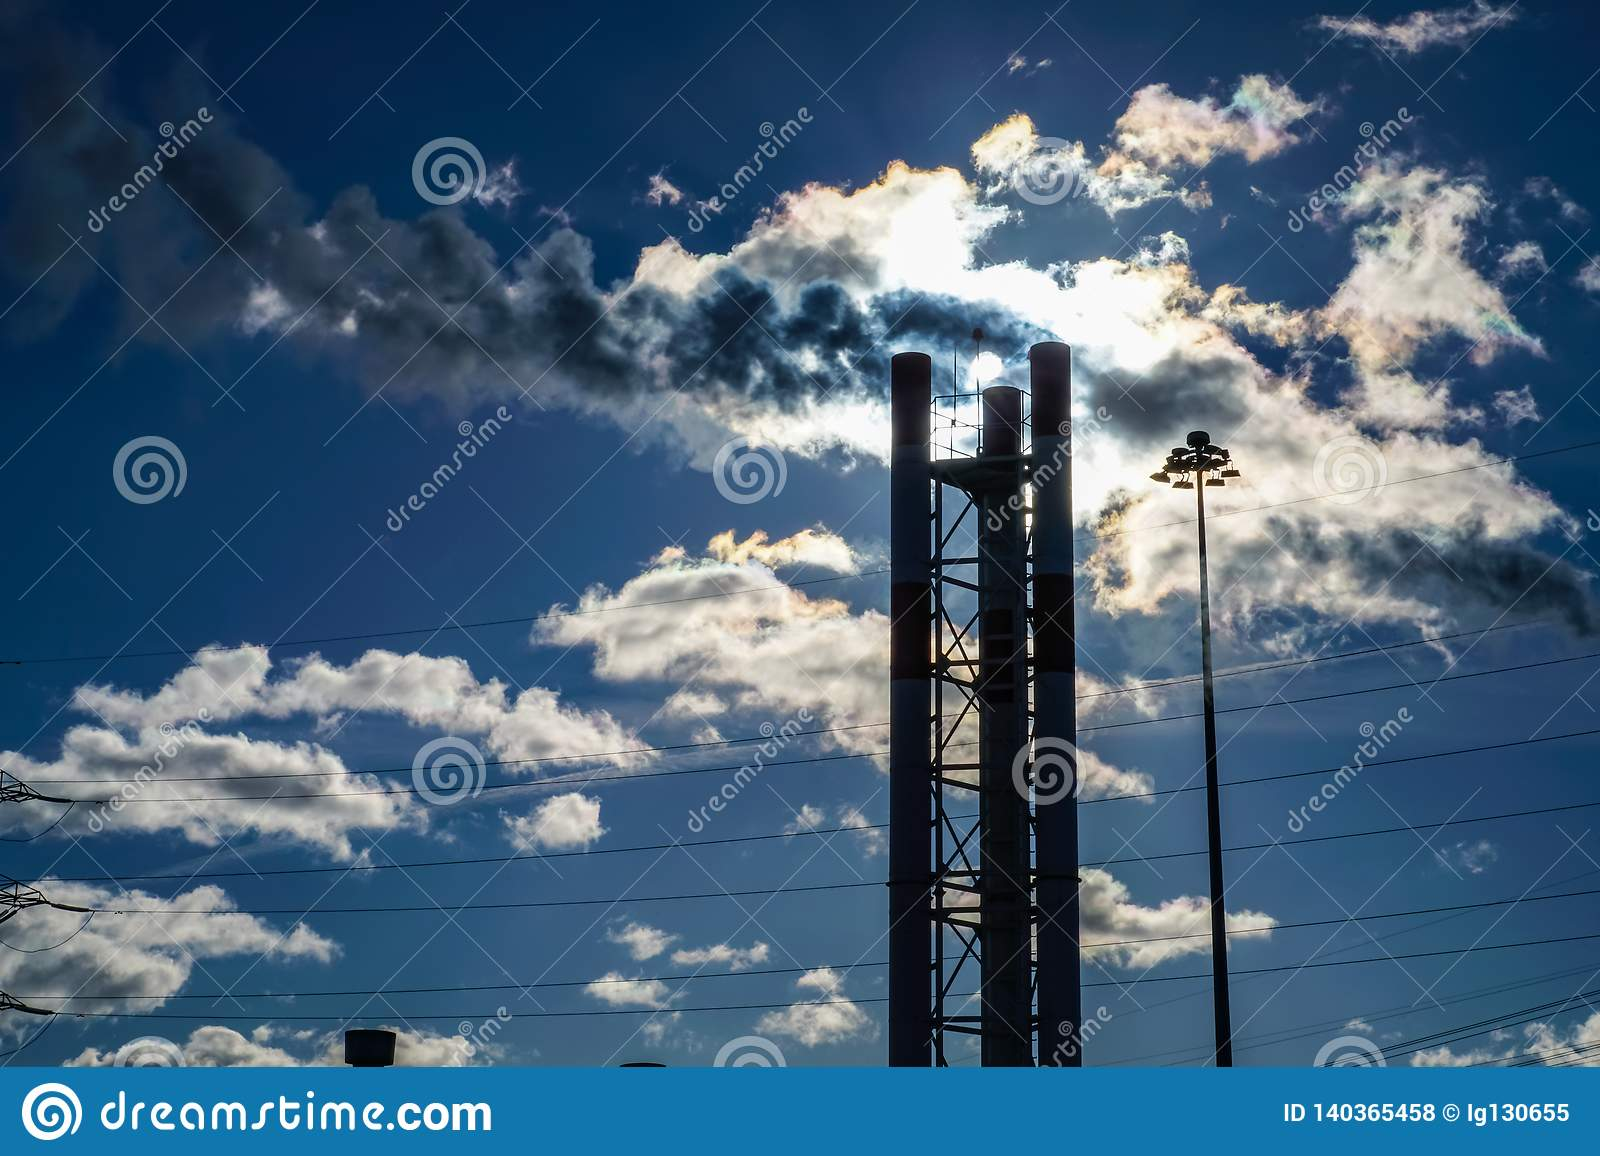 The Warm Air Coming Out Of The Pipes Mixes With The Clouds